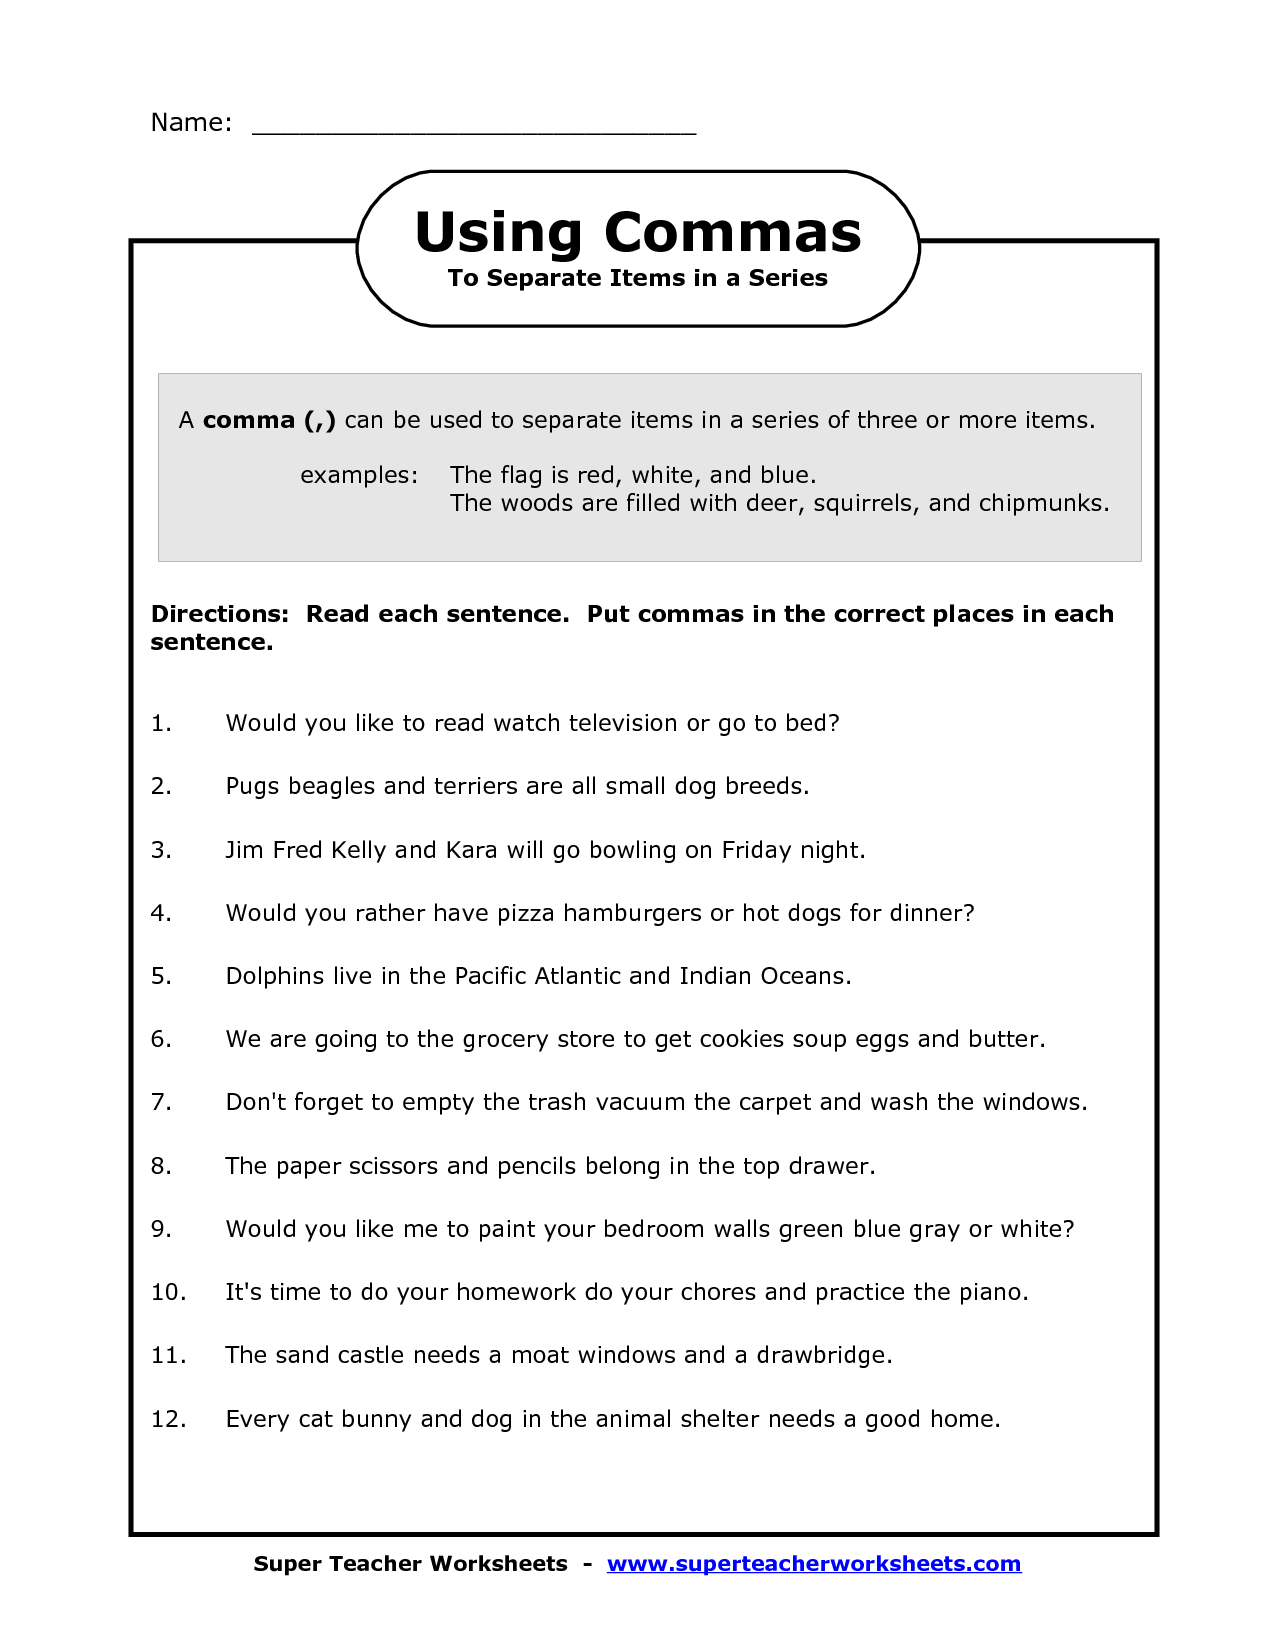 comma in a series worksheets image – Fanboys Worksheet